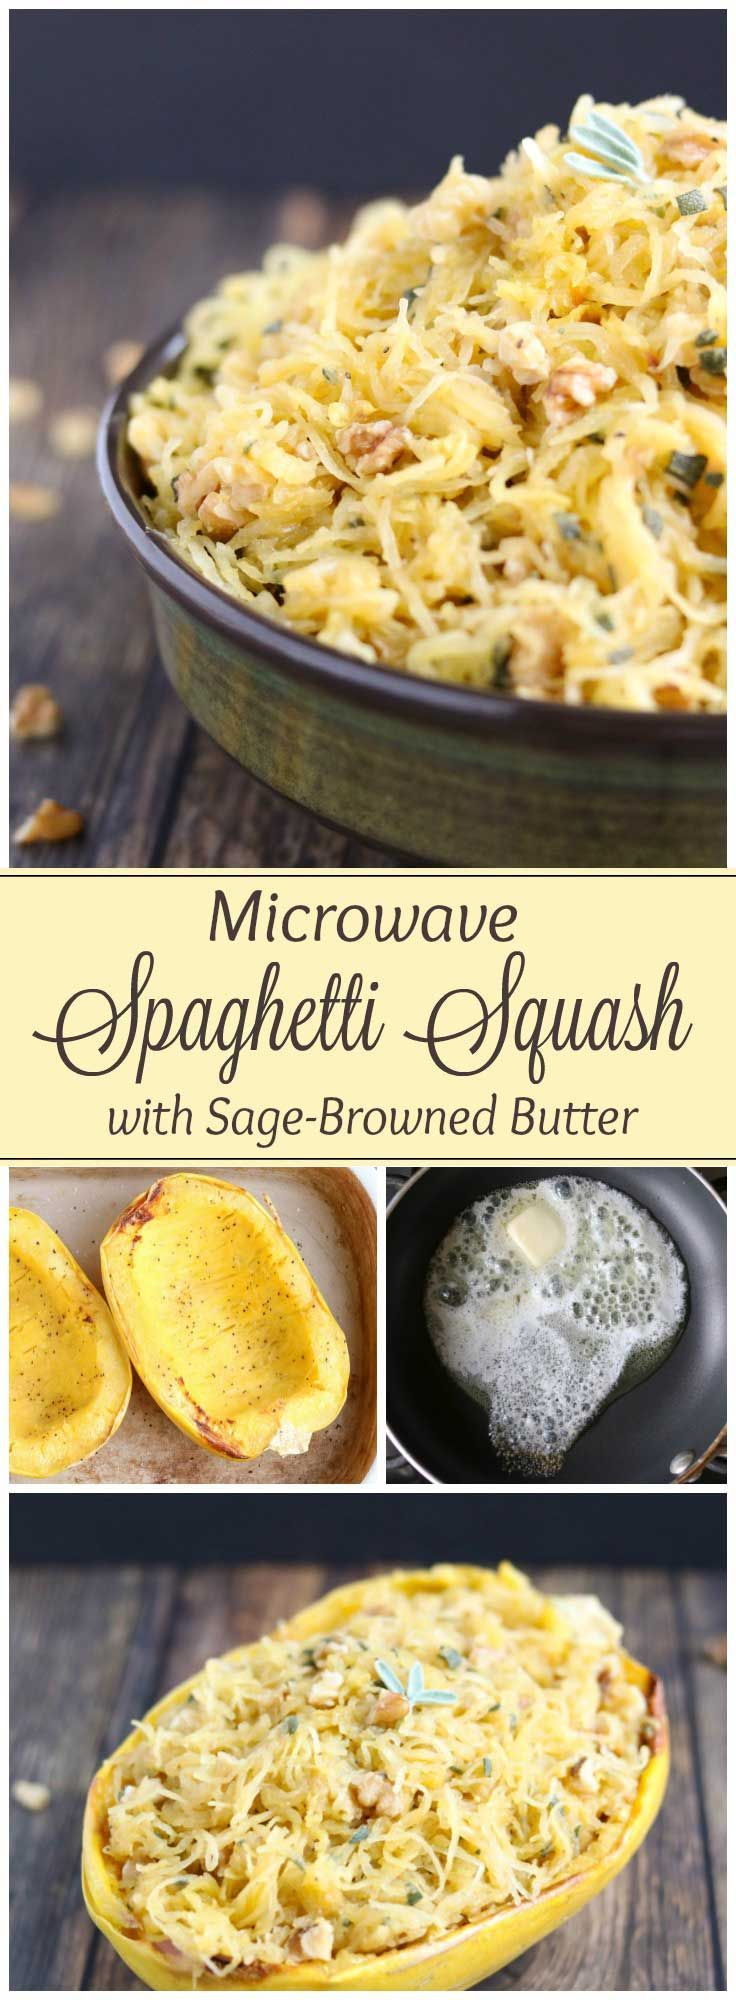 This fantastic recipe for Microwave Spaghetti Squash is easy enough for weeknights, but impressive enough for Thanksgiving dinner and holiday buffets! Rich browned butter with crunchy, toasted walnuts and fragrant sage - amazing!